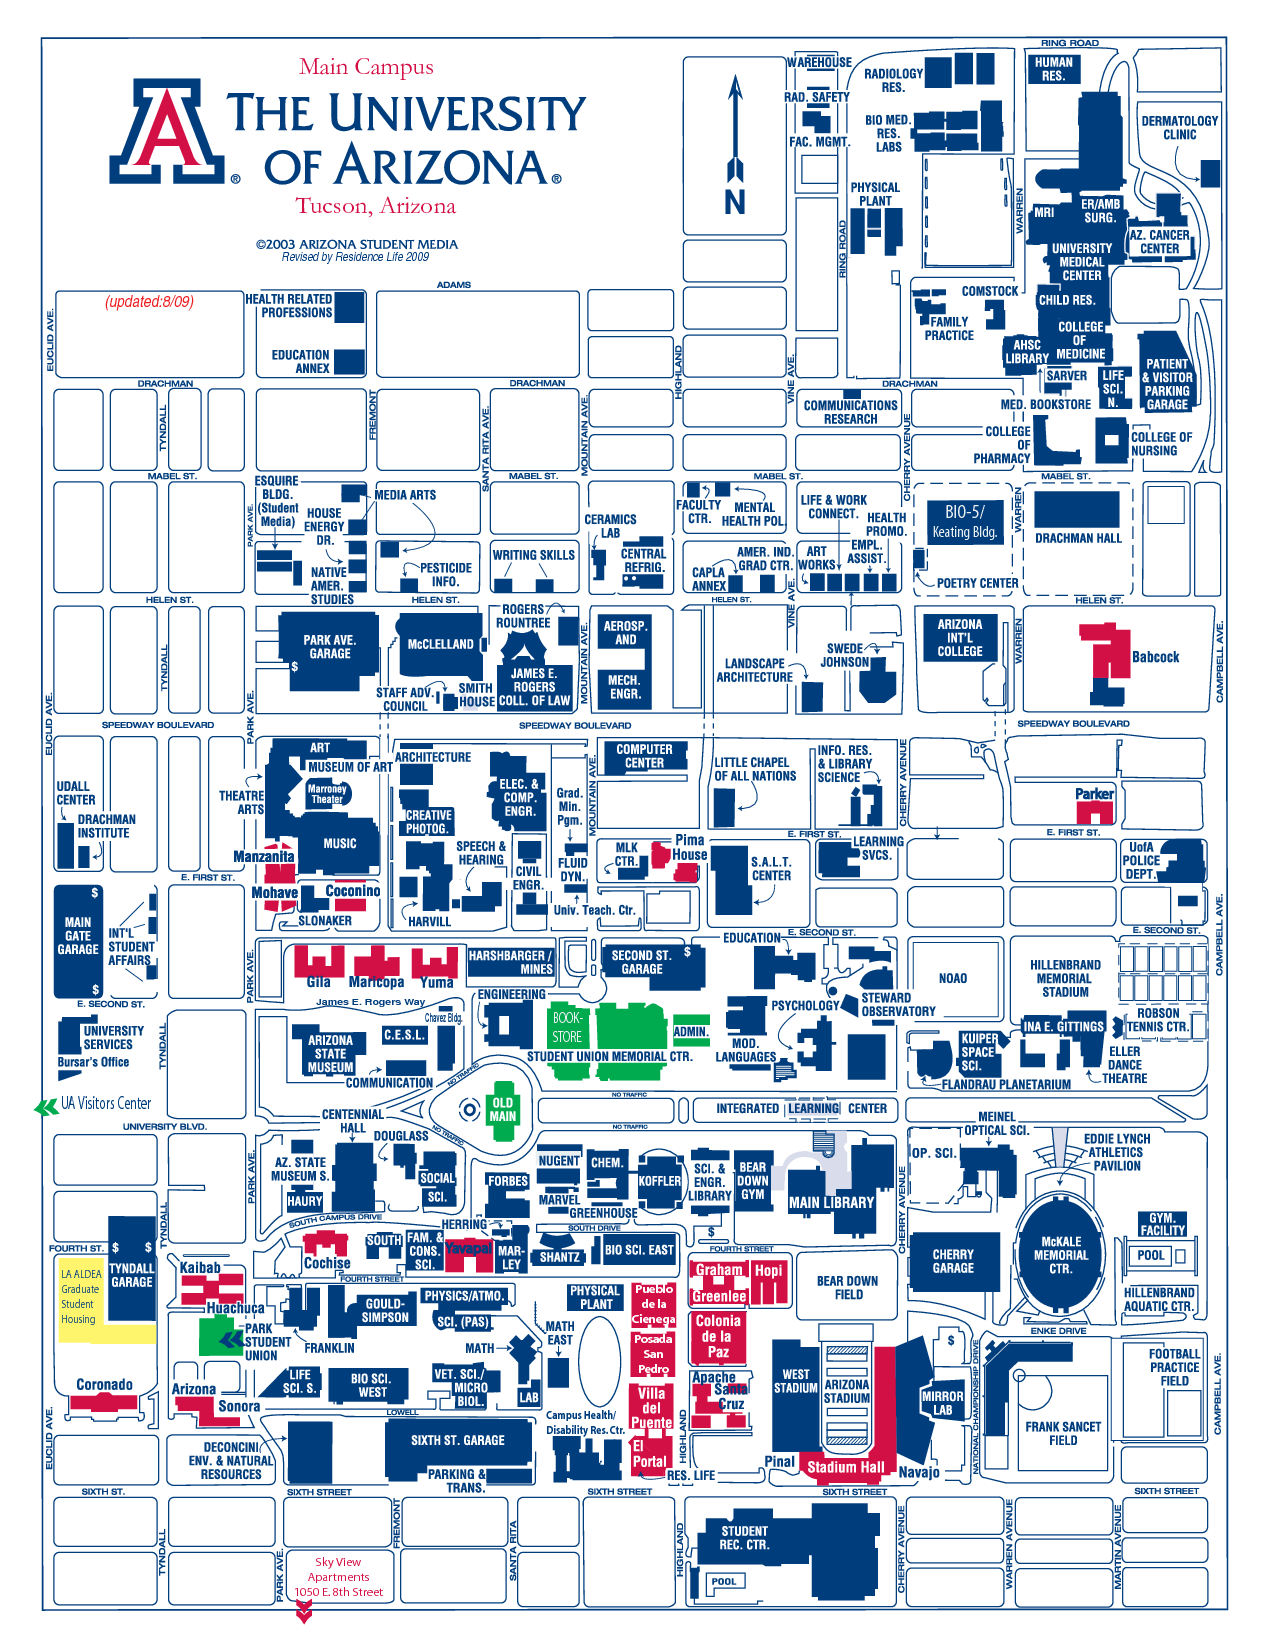 Exceptional image intended for university of arizona campus map printable